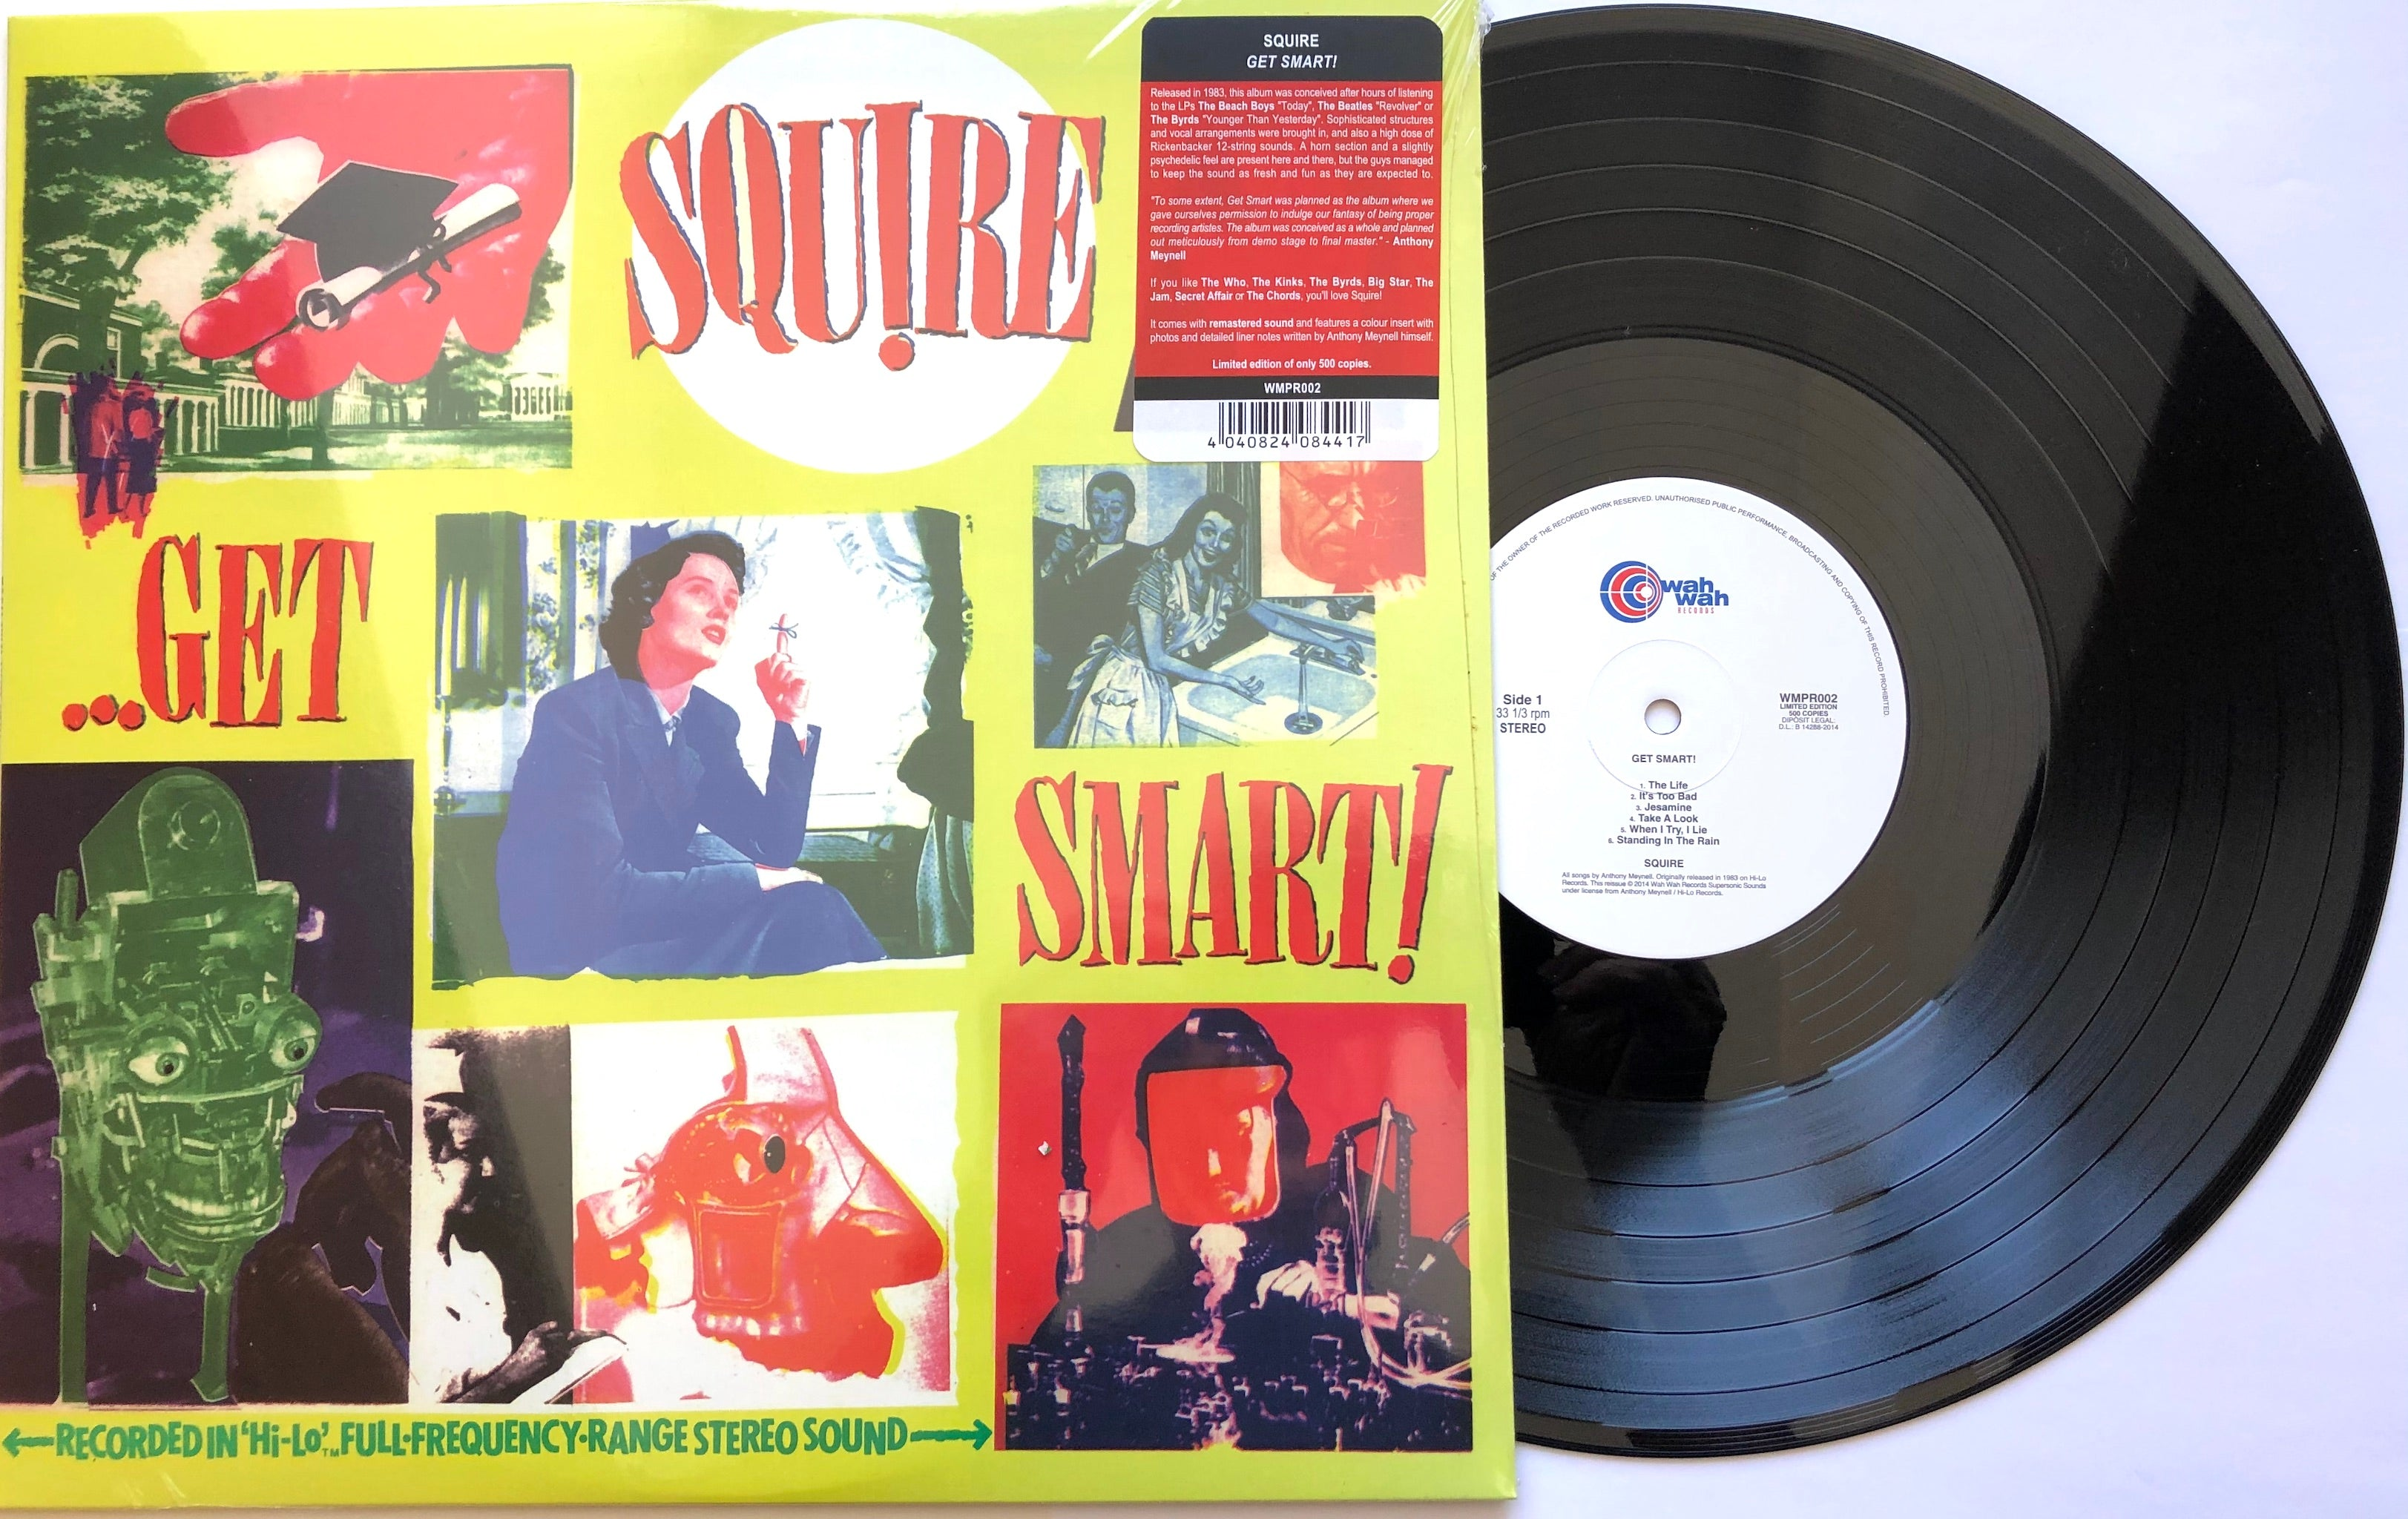 Squire - Get Smart! - Vinyl LP with special insert